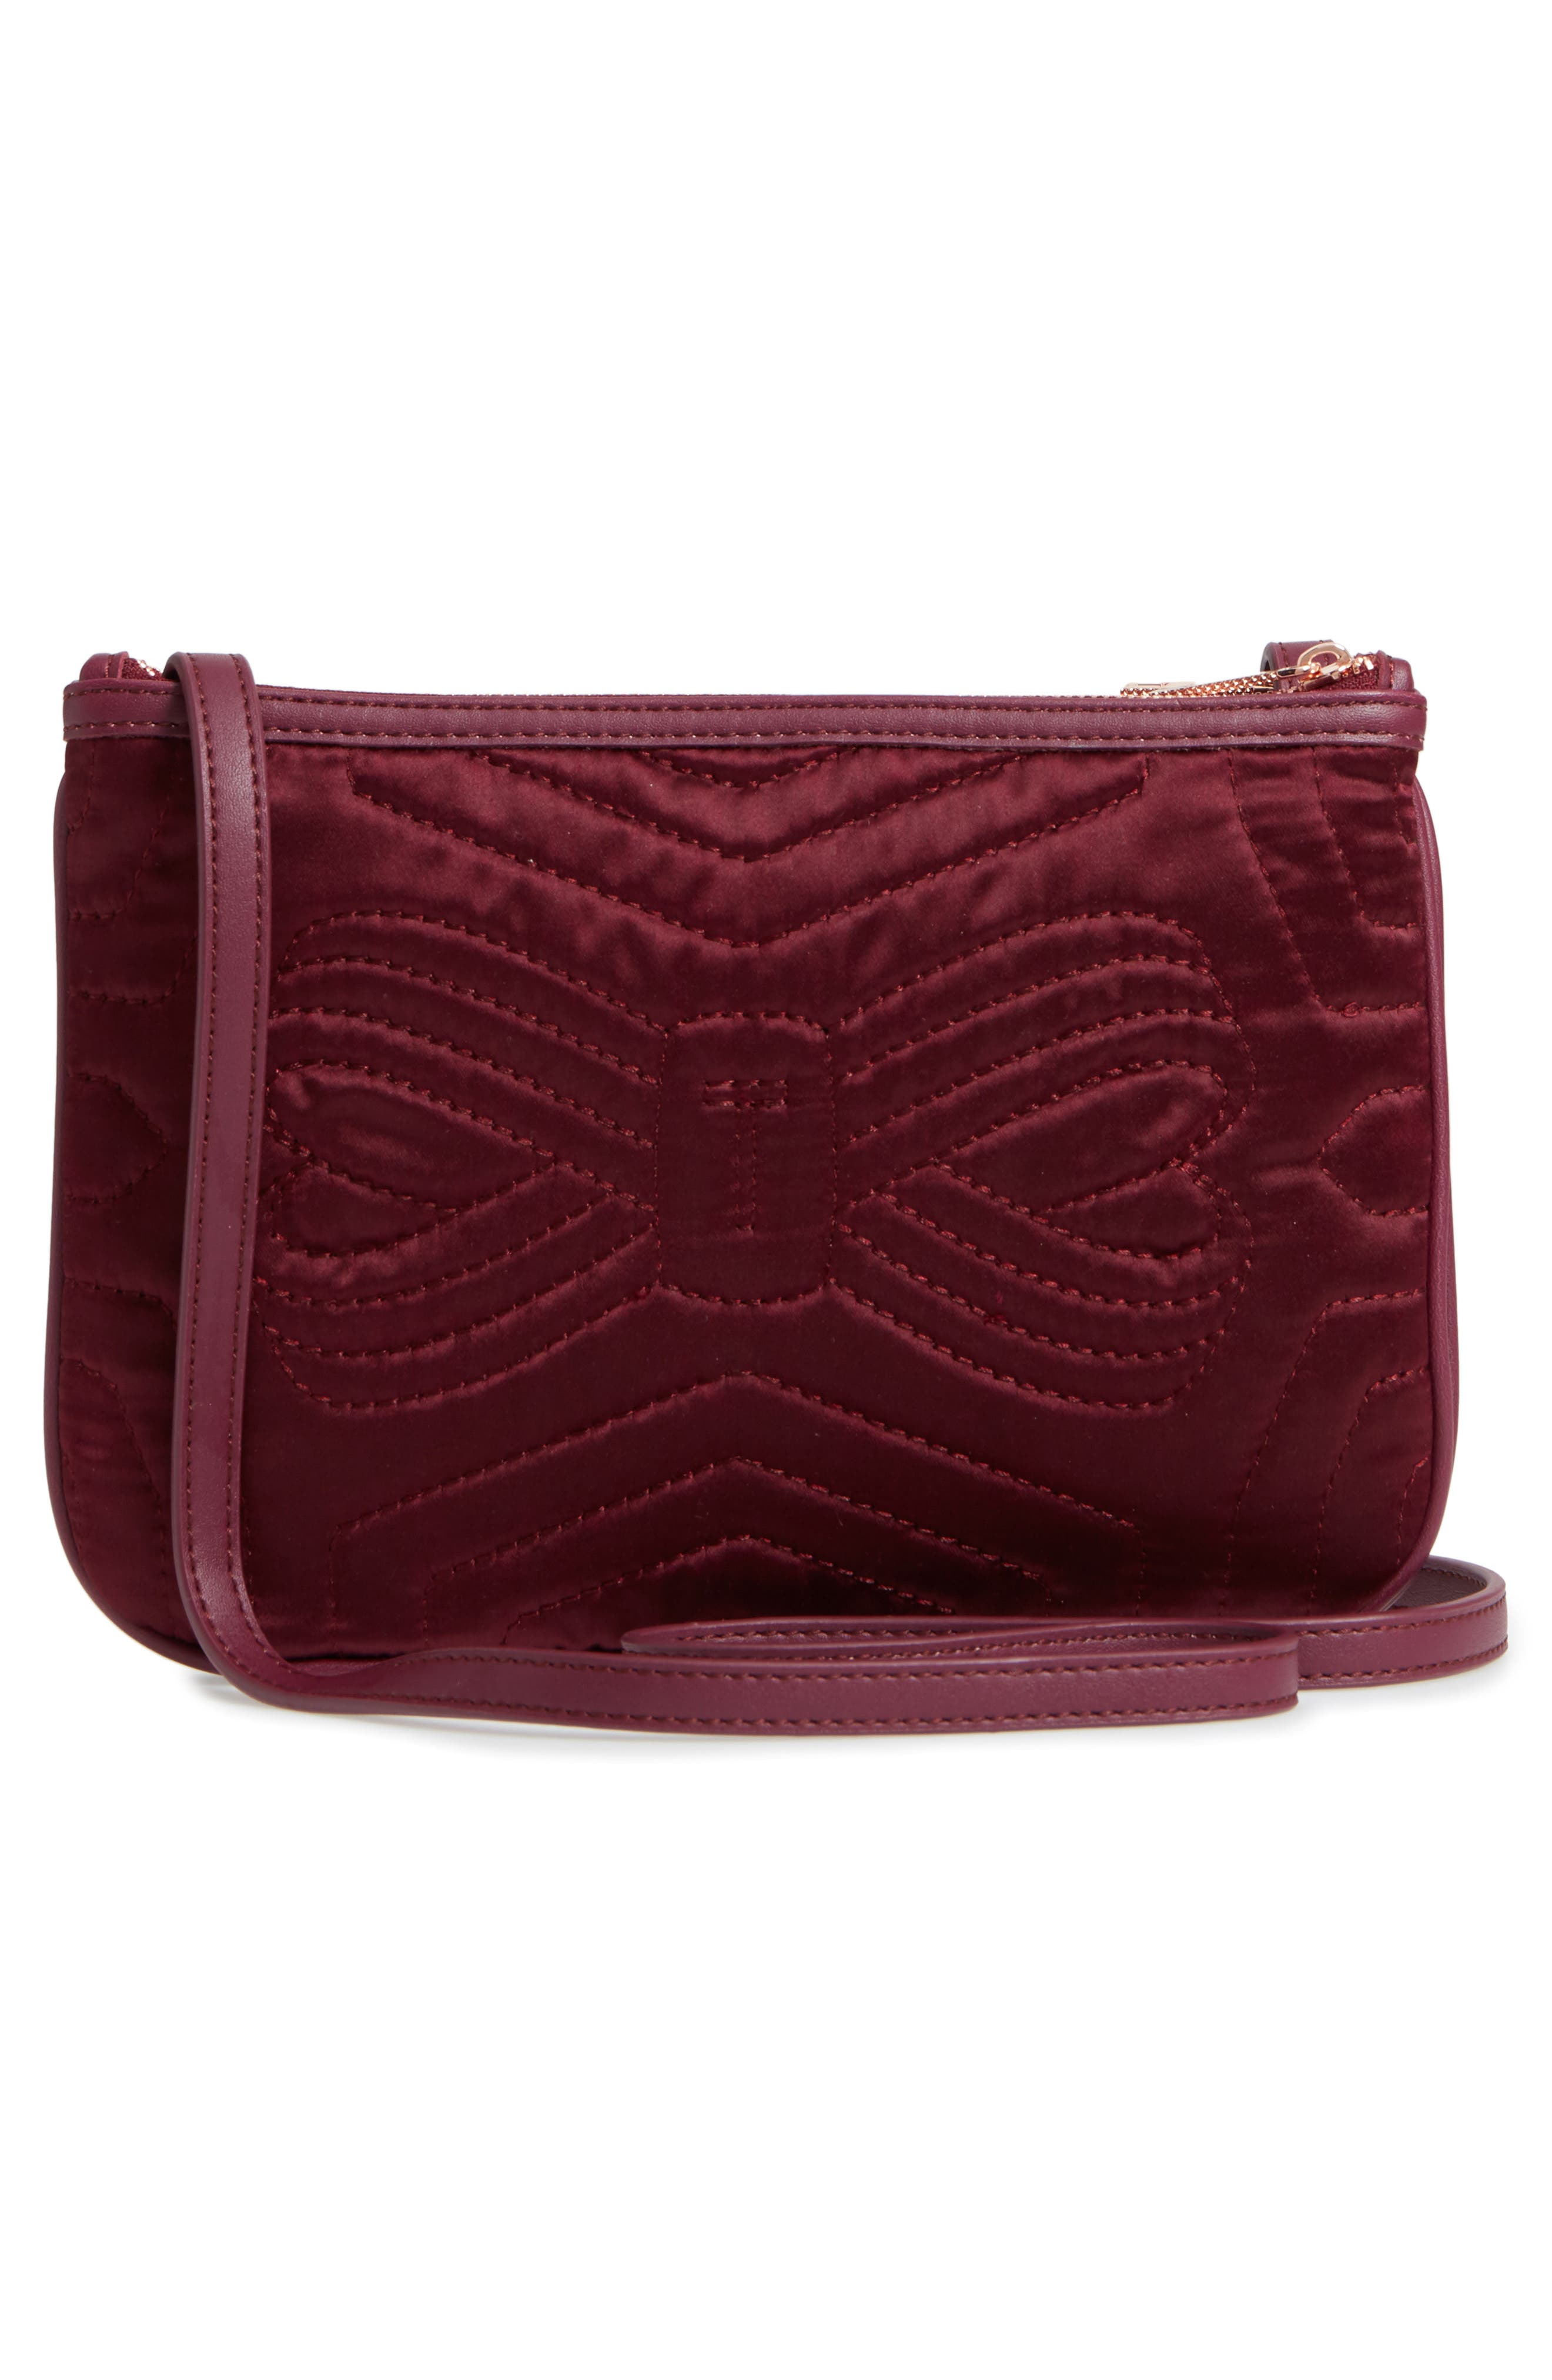 Quilted Bow Crossbody Bag,                             Alternate thumbnail 5, color,                             Maroon